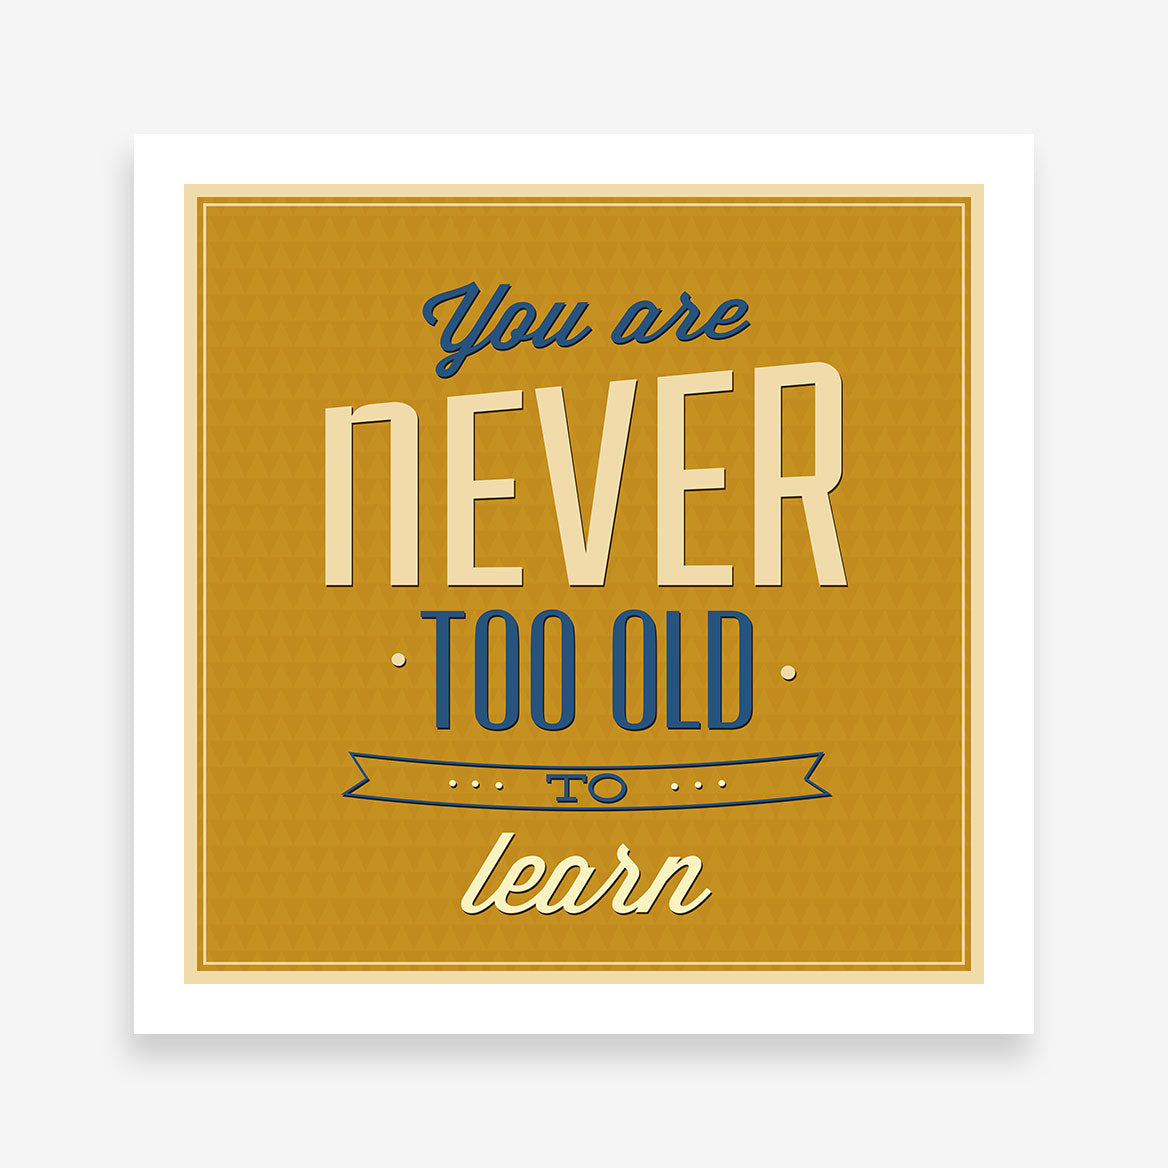 "Retro poster print with blue and white inspirational quote ""You are never too old to learn"", on a mustard background."